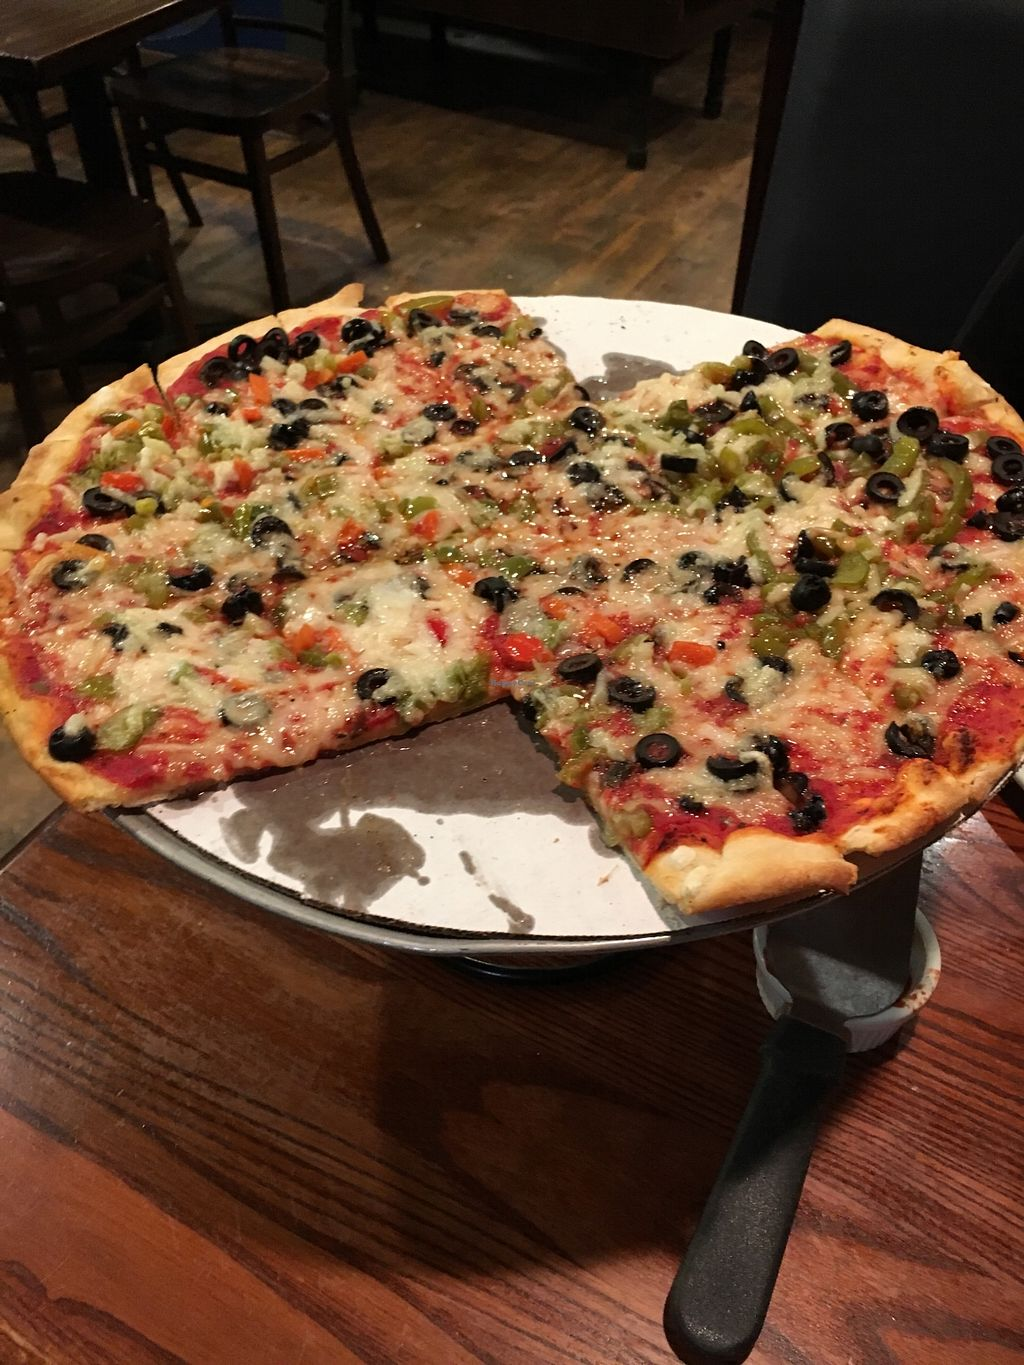 "Photo of Carriage Court Pizza  by <a href=""/members/profile/VeganLew"">VeganLew</a> <br/>Thin crust pizza  <br/> February 12, 2018  - <a href='/contact/abuse/image/107119/358565'>Report</a>"